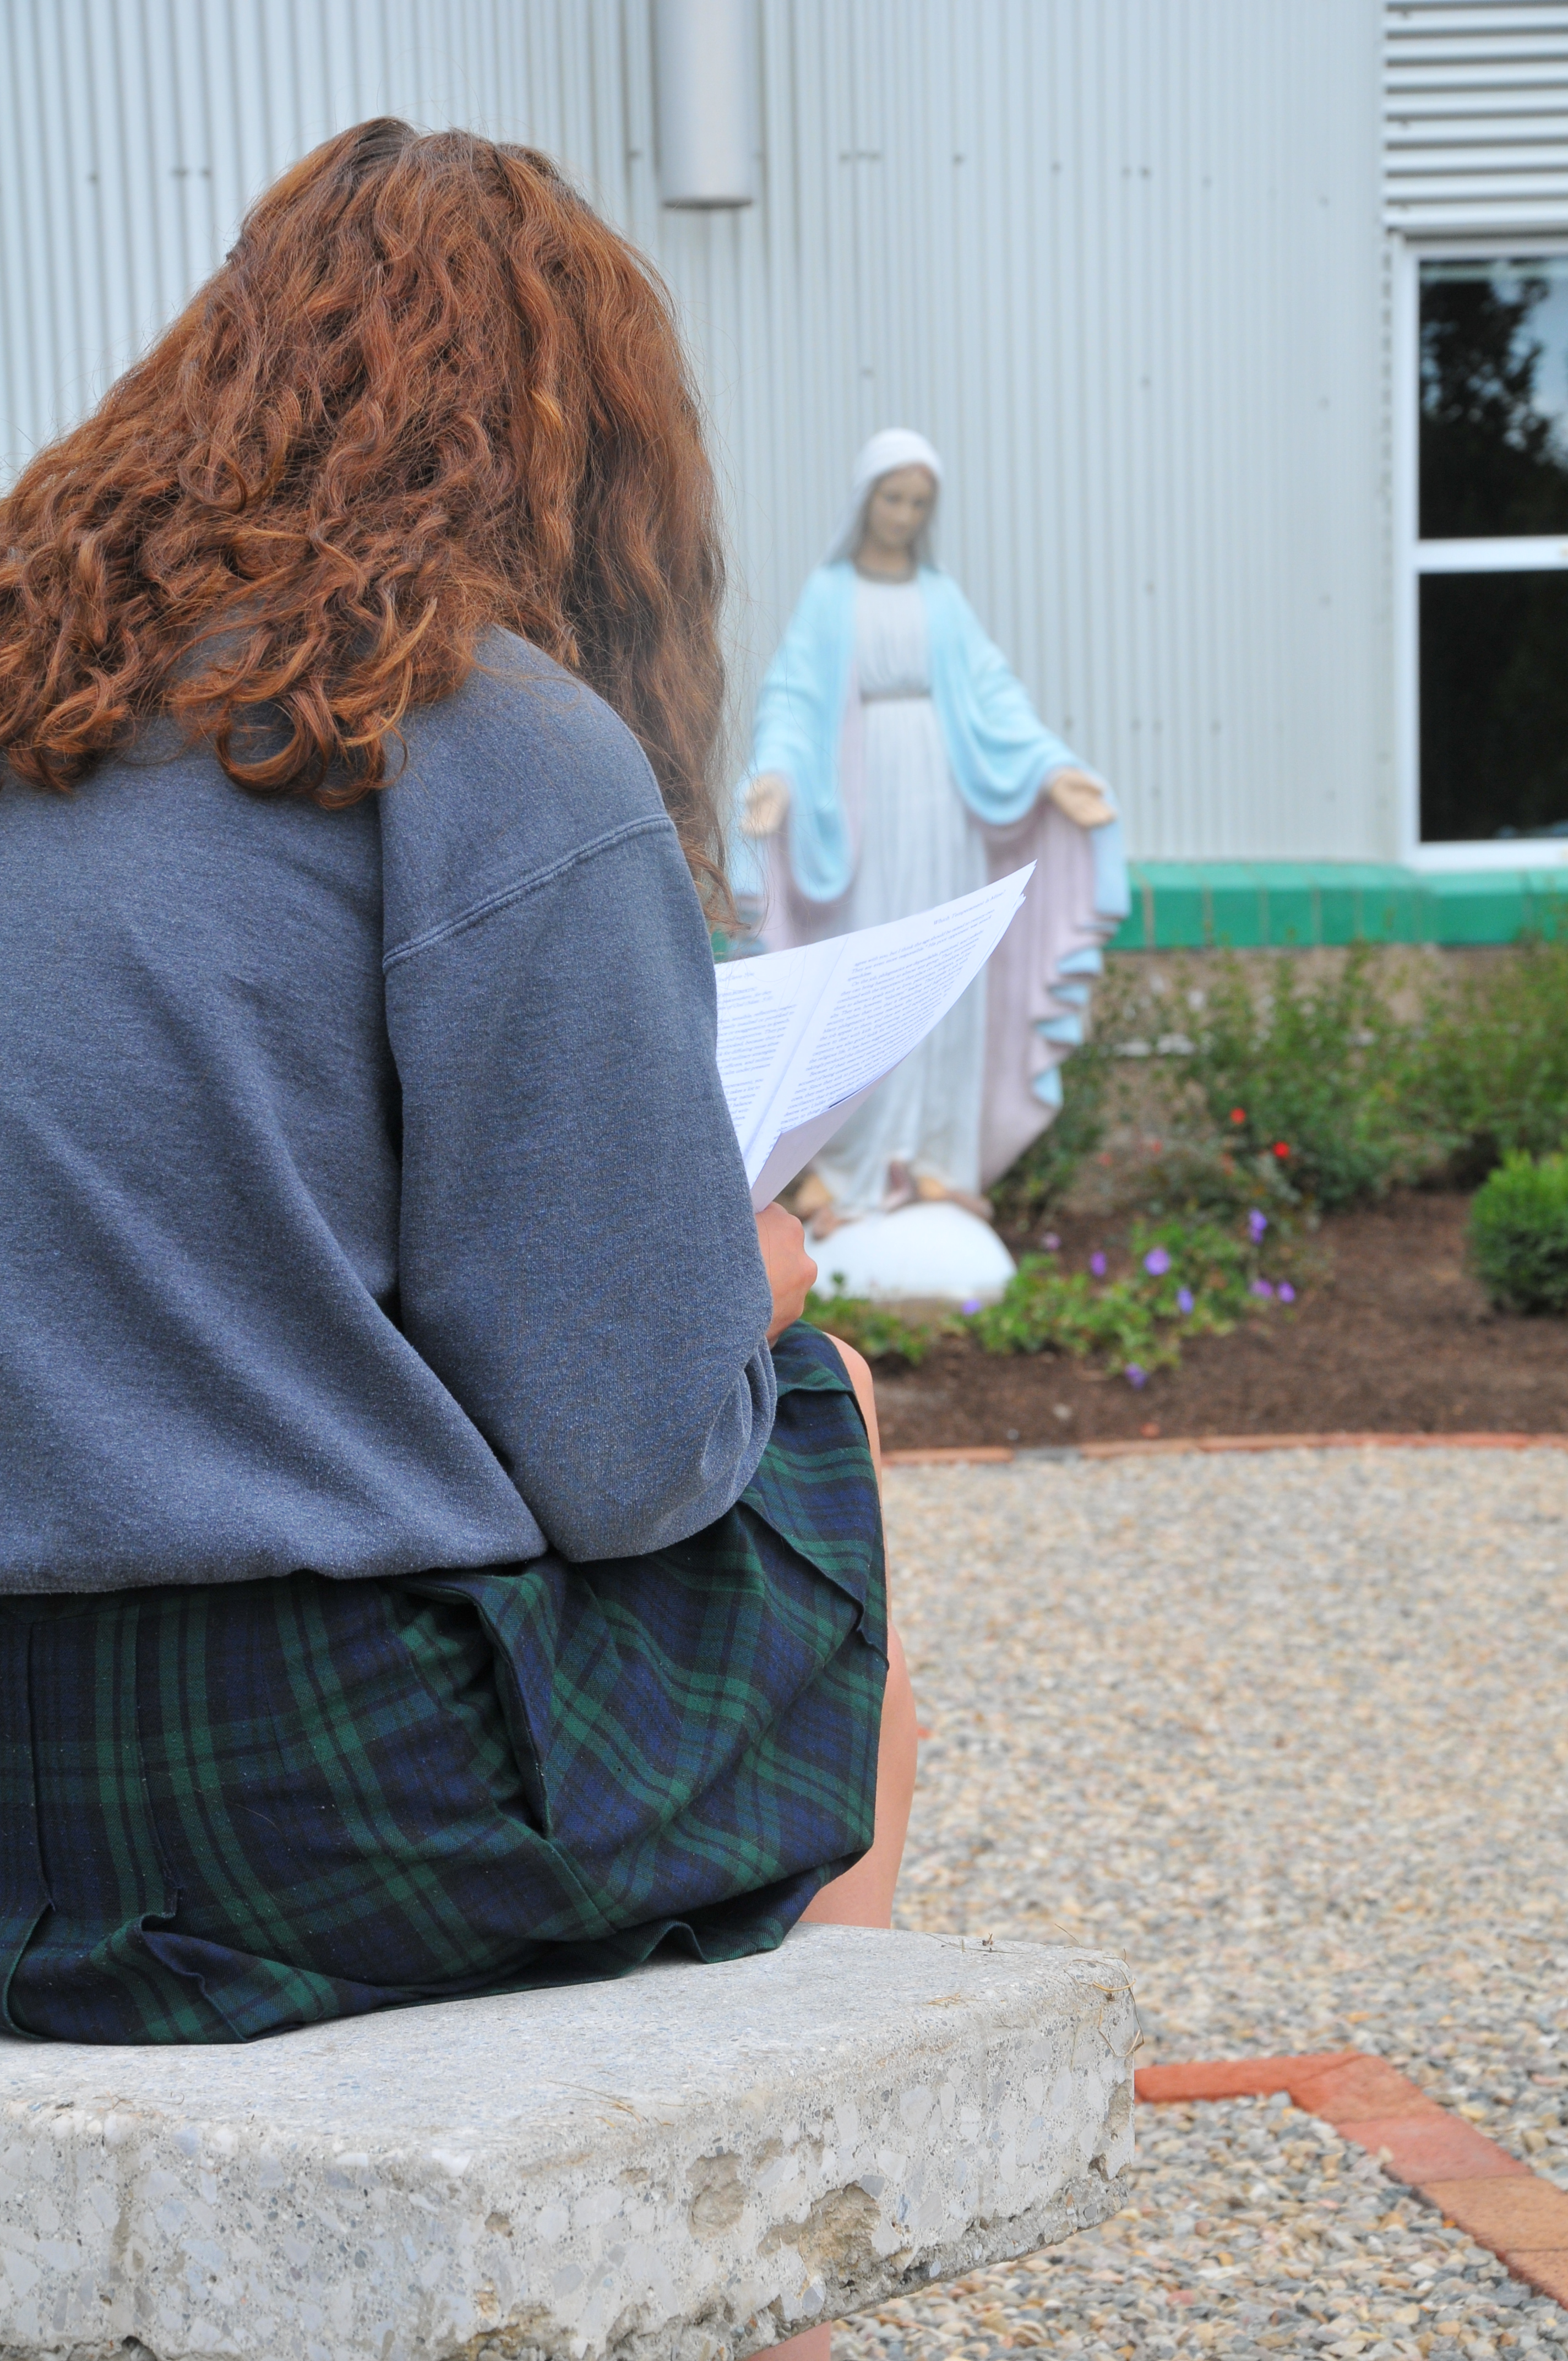 A student studies in the Marian Garden.